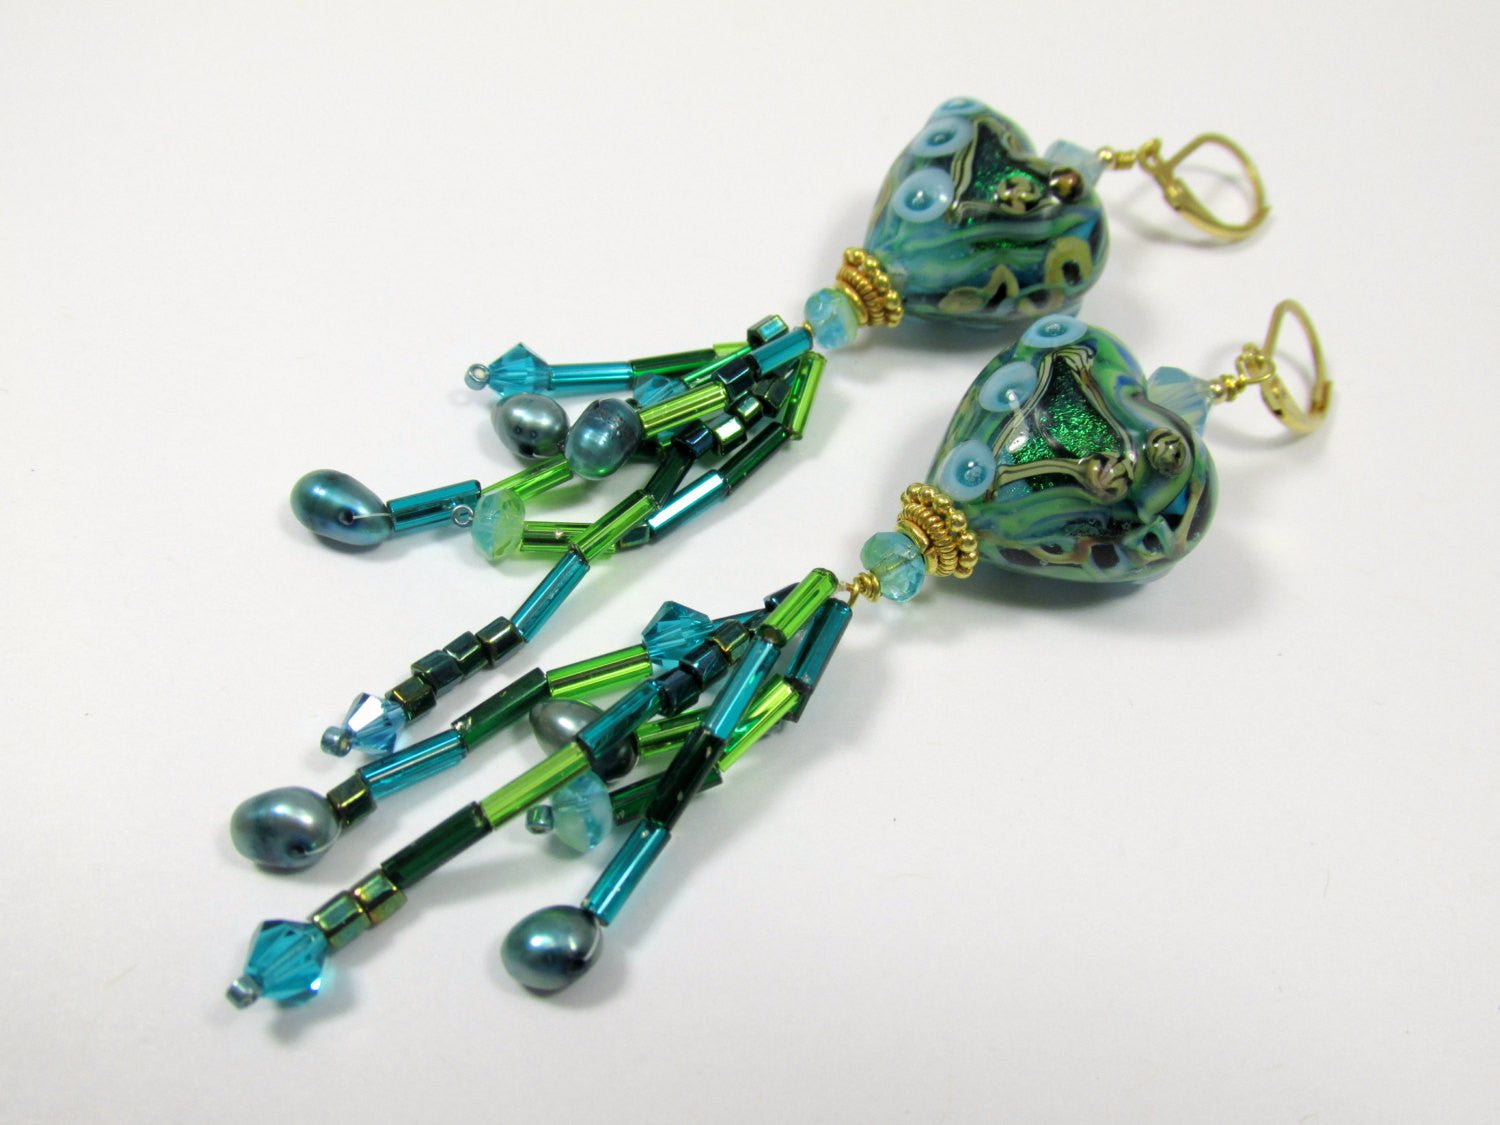 Green Emerald Pools Lampwork Glass Heart Necklace and Earring Set with Aqua Turquoise beaded fringe & Freshwater Pearls in 22k Gold Vermeil - Odyssey Creations